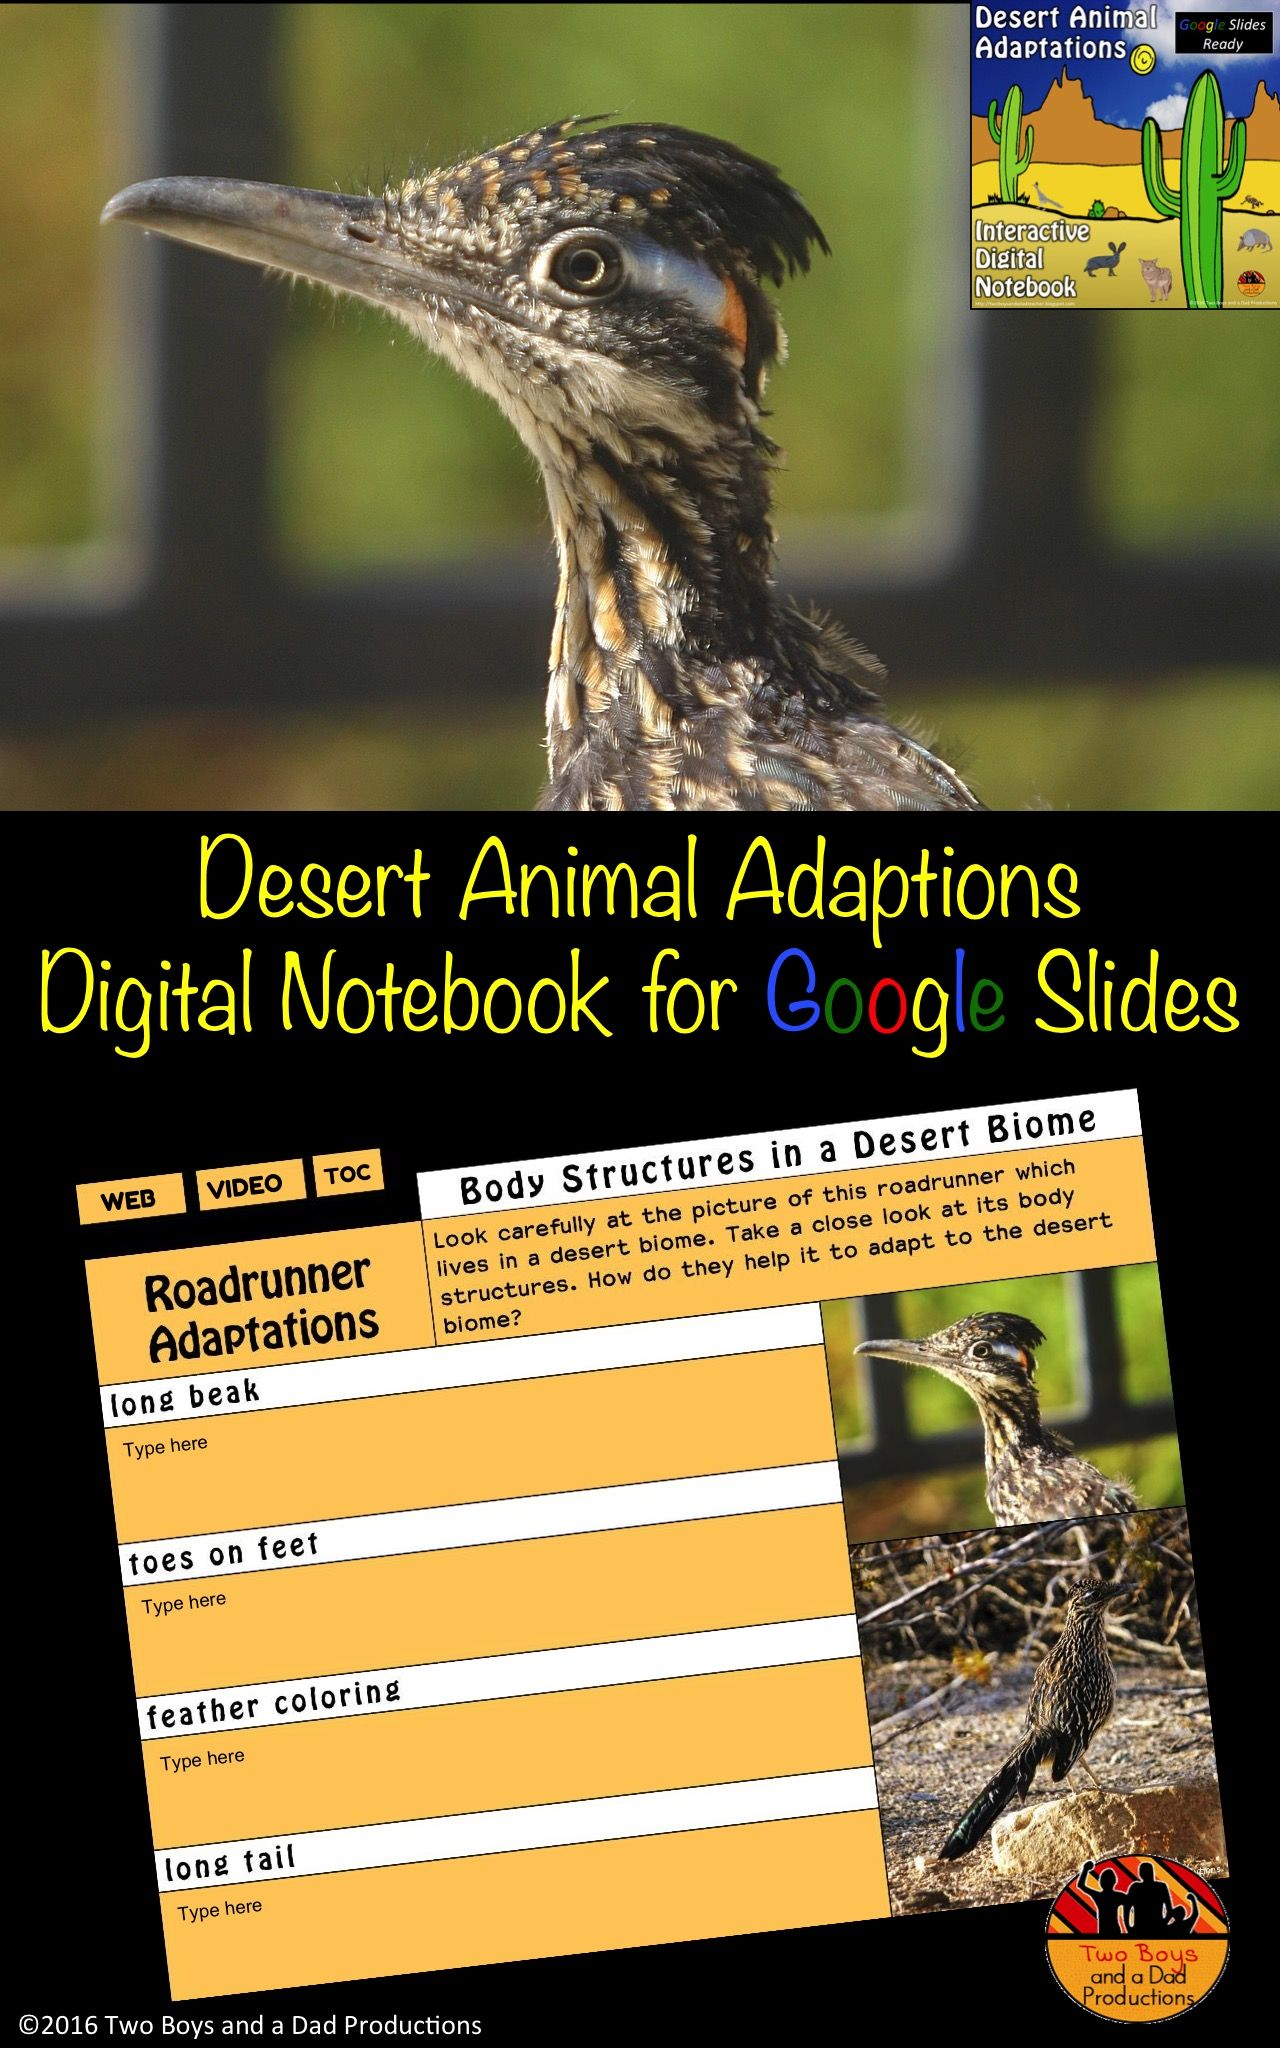 Desert Animal Adaptations Interactive Digital Notebook For